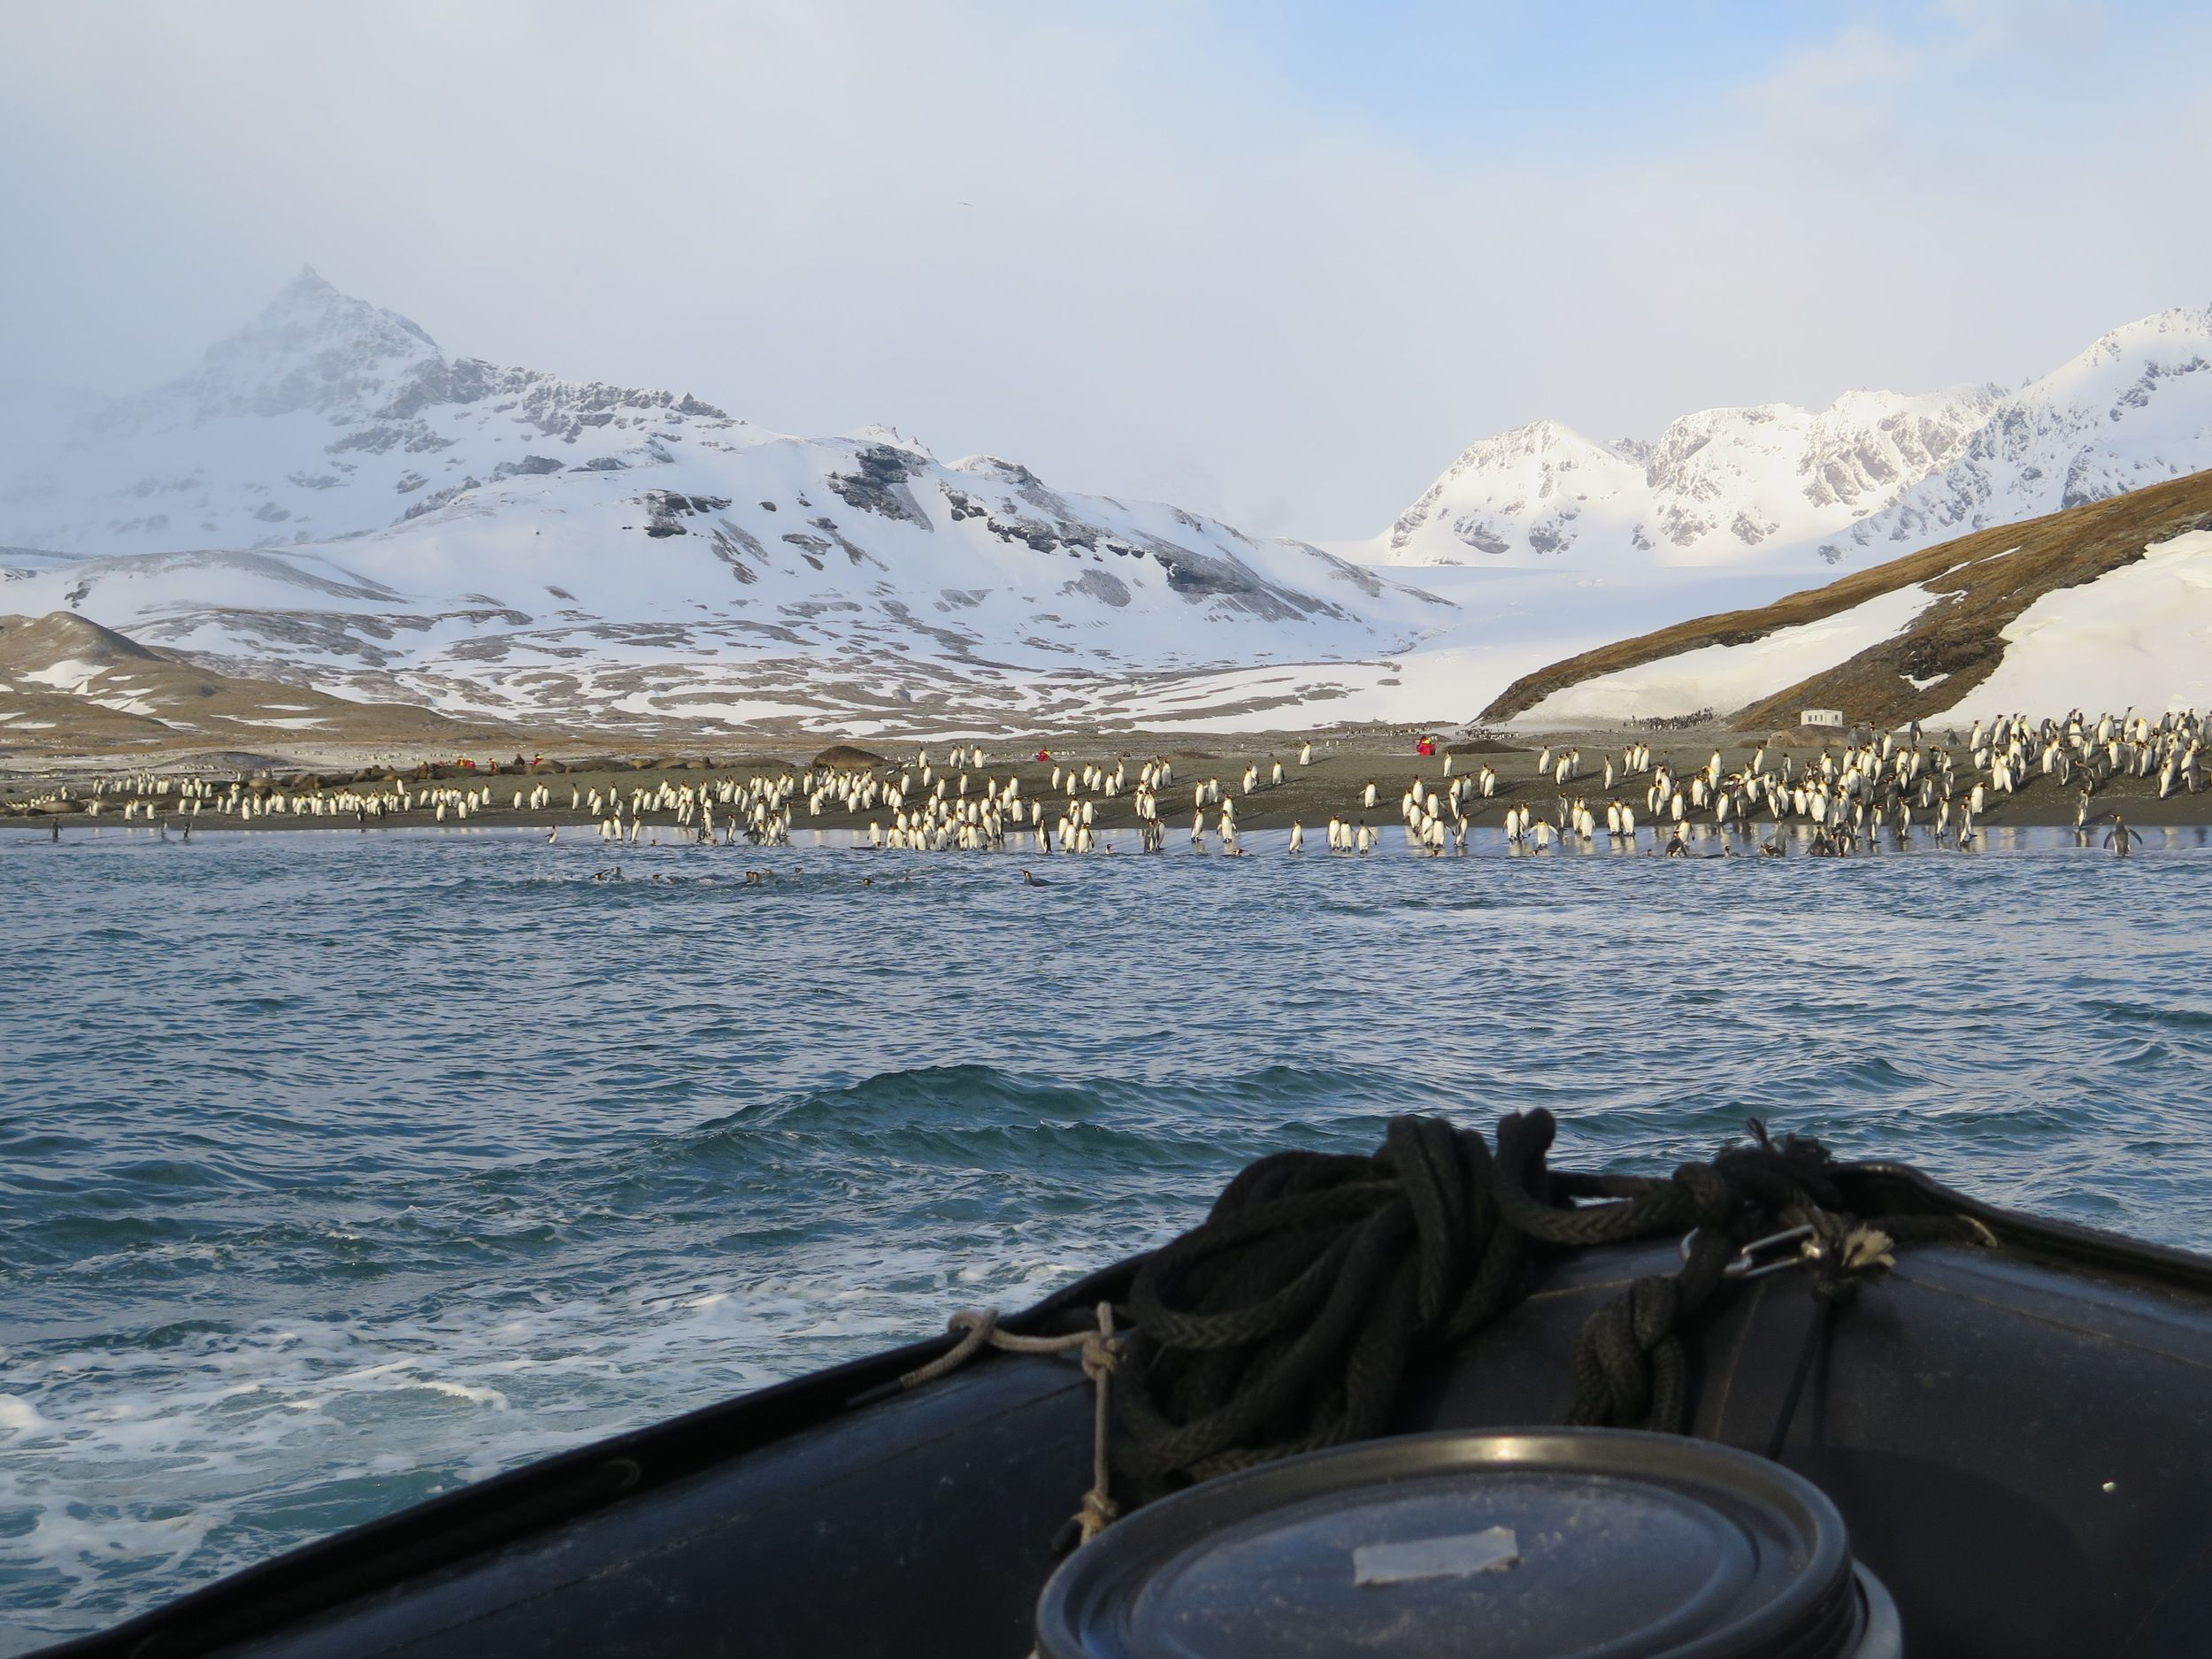 Hundreds of the king penguins seemed eager to welcome us at the landing site.